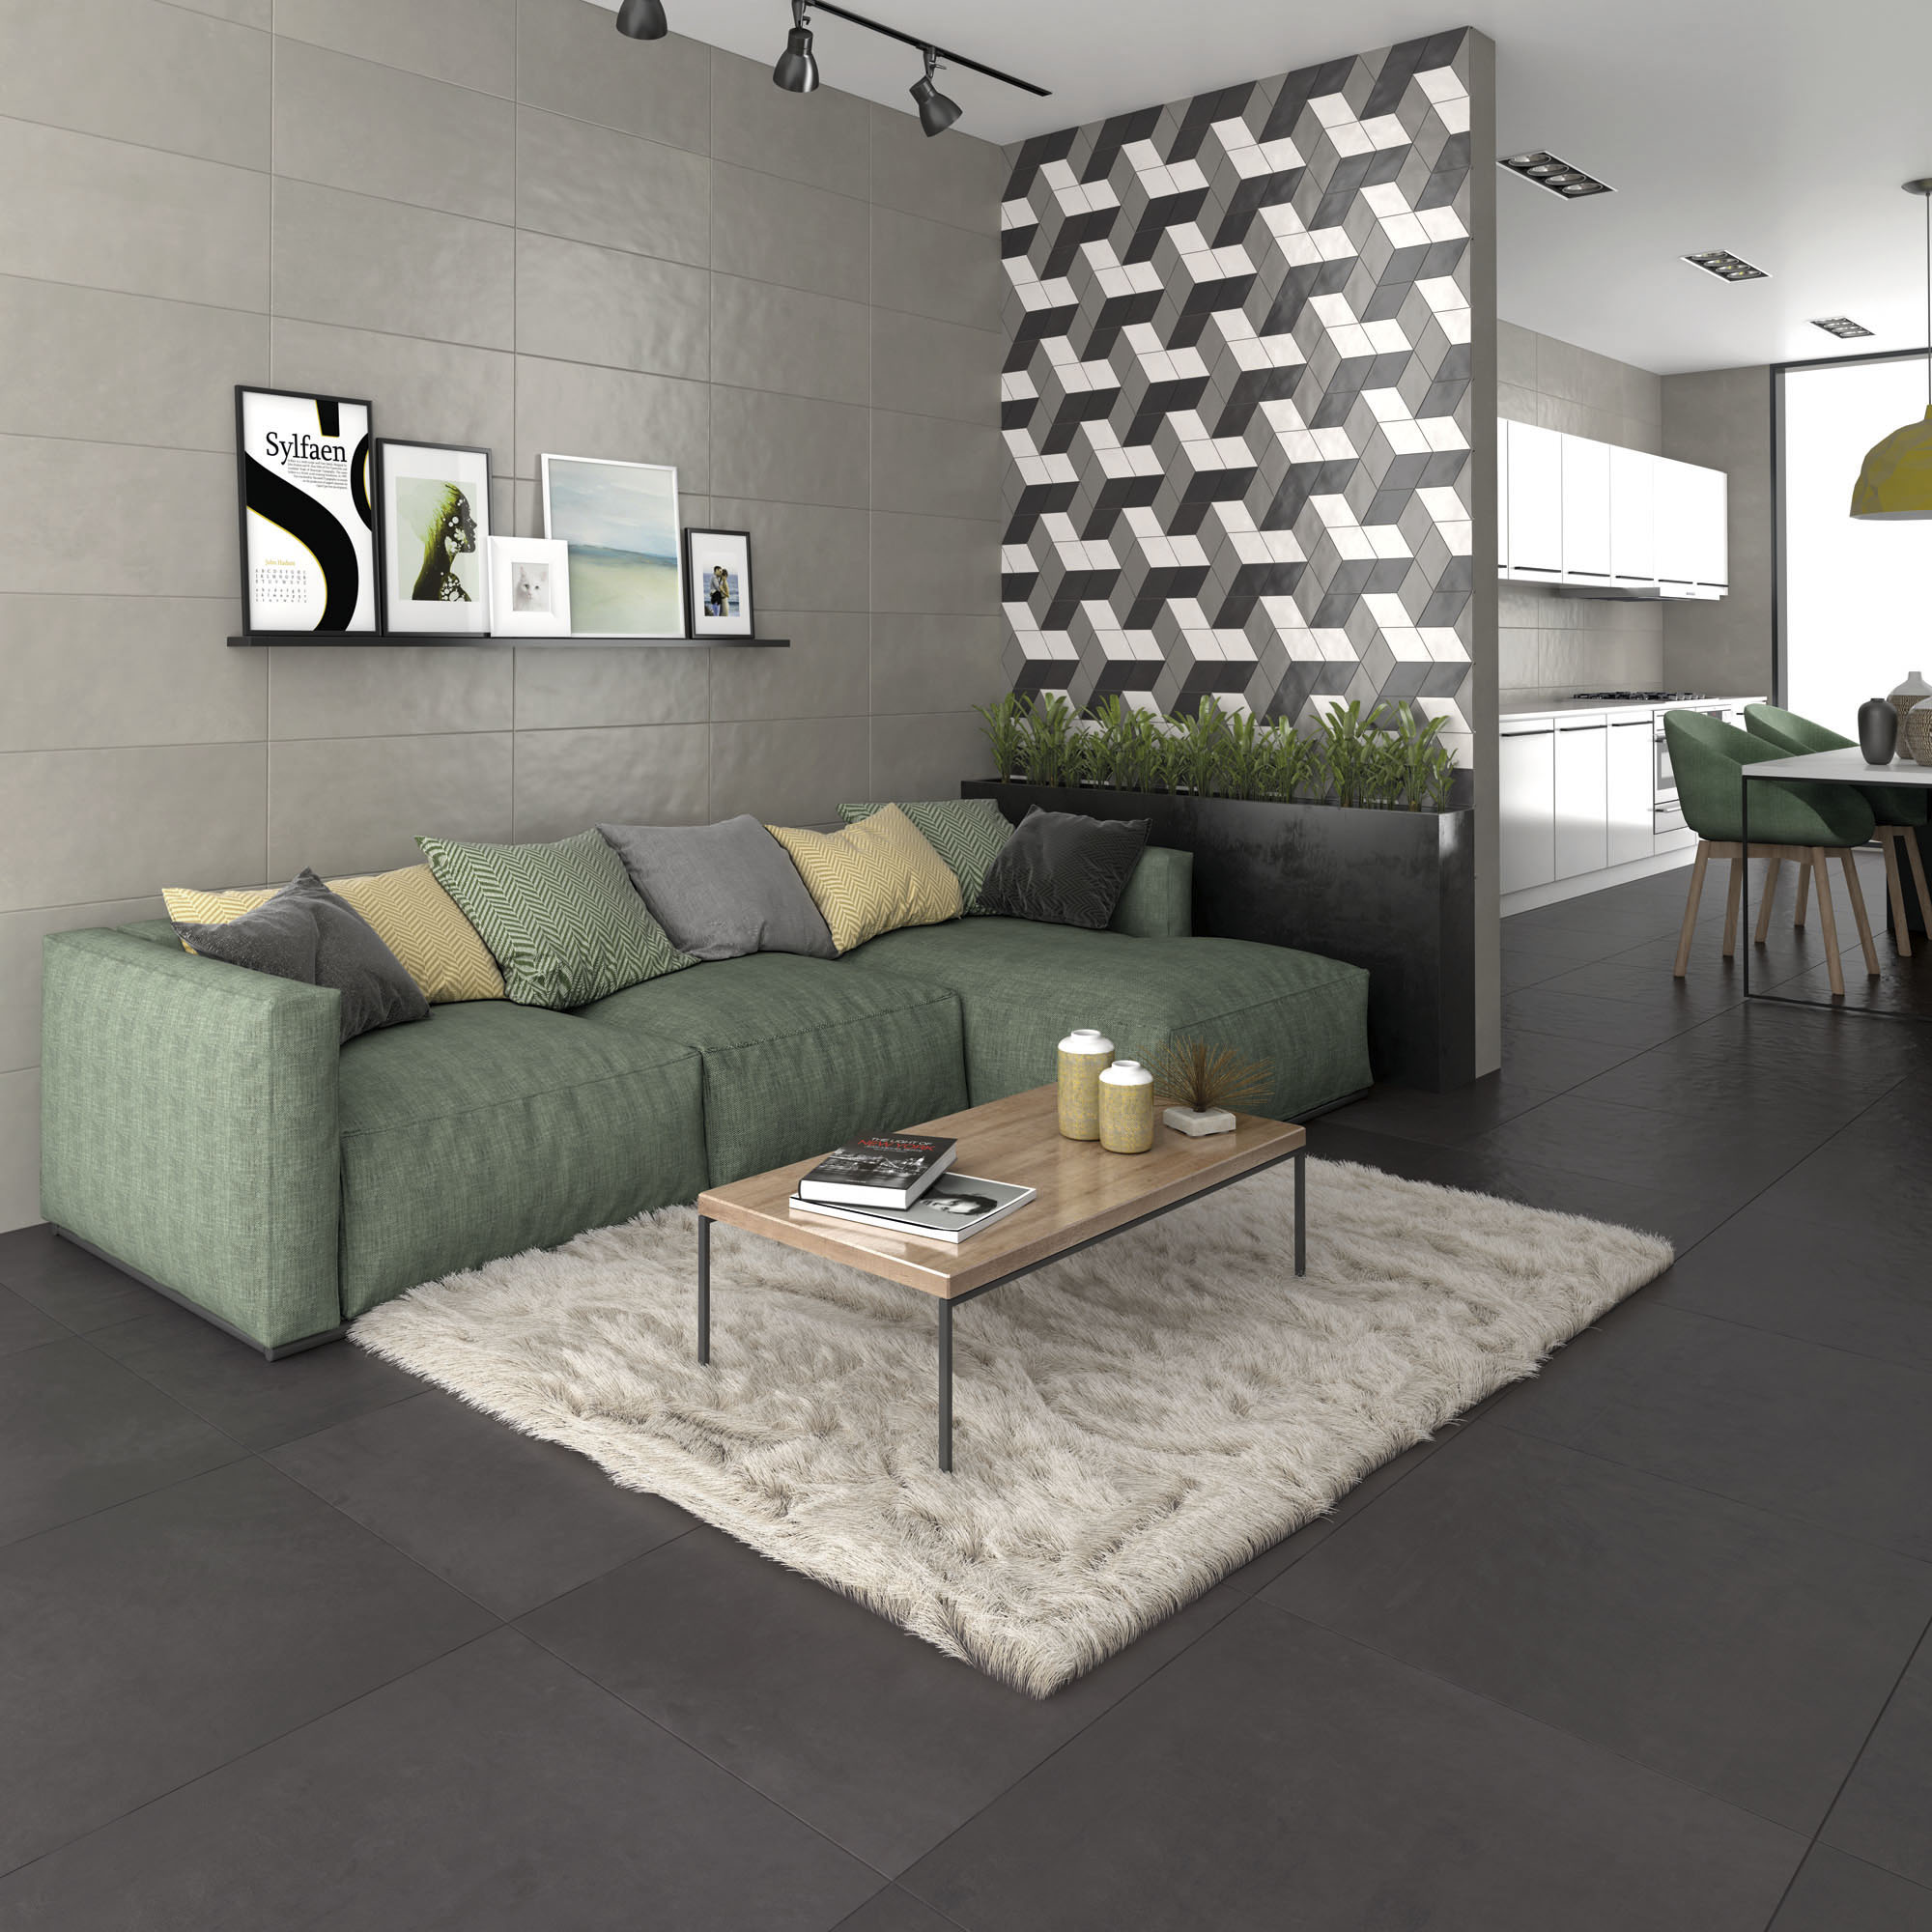 Liv'in Luna Grey + Charcoal Black_Sala amb